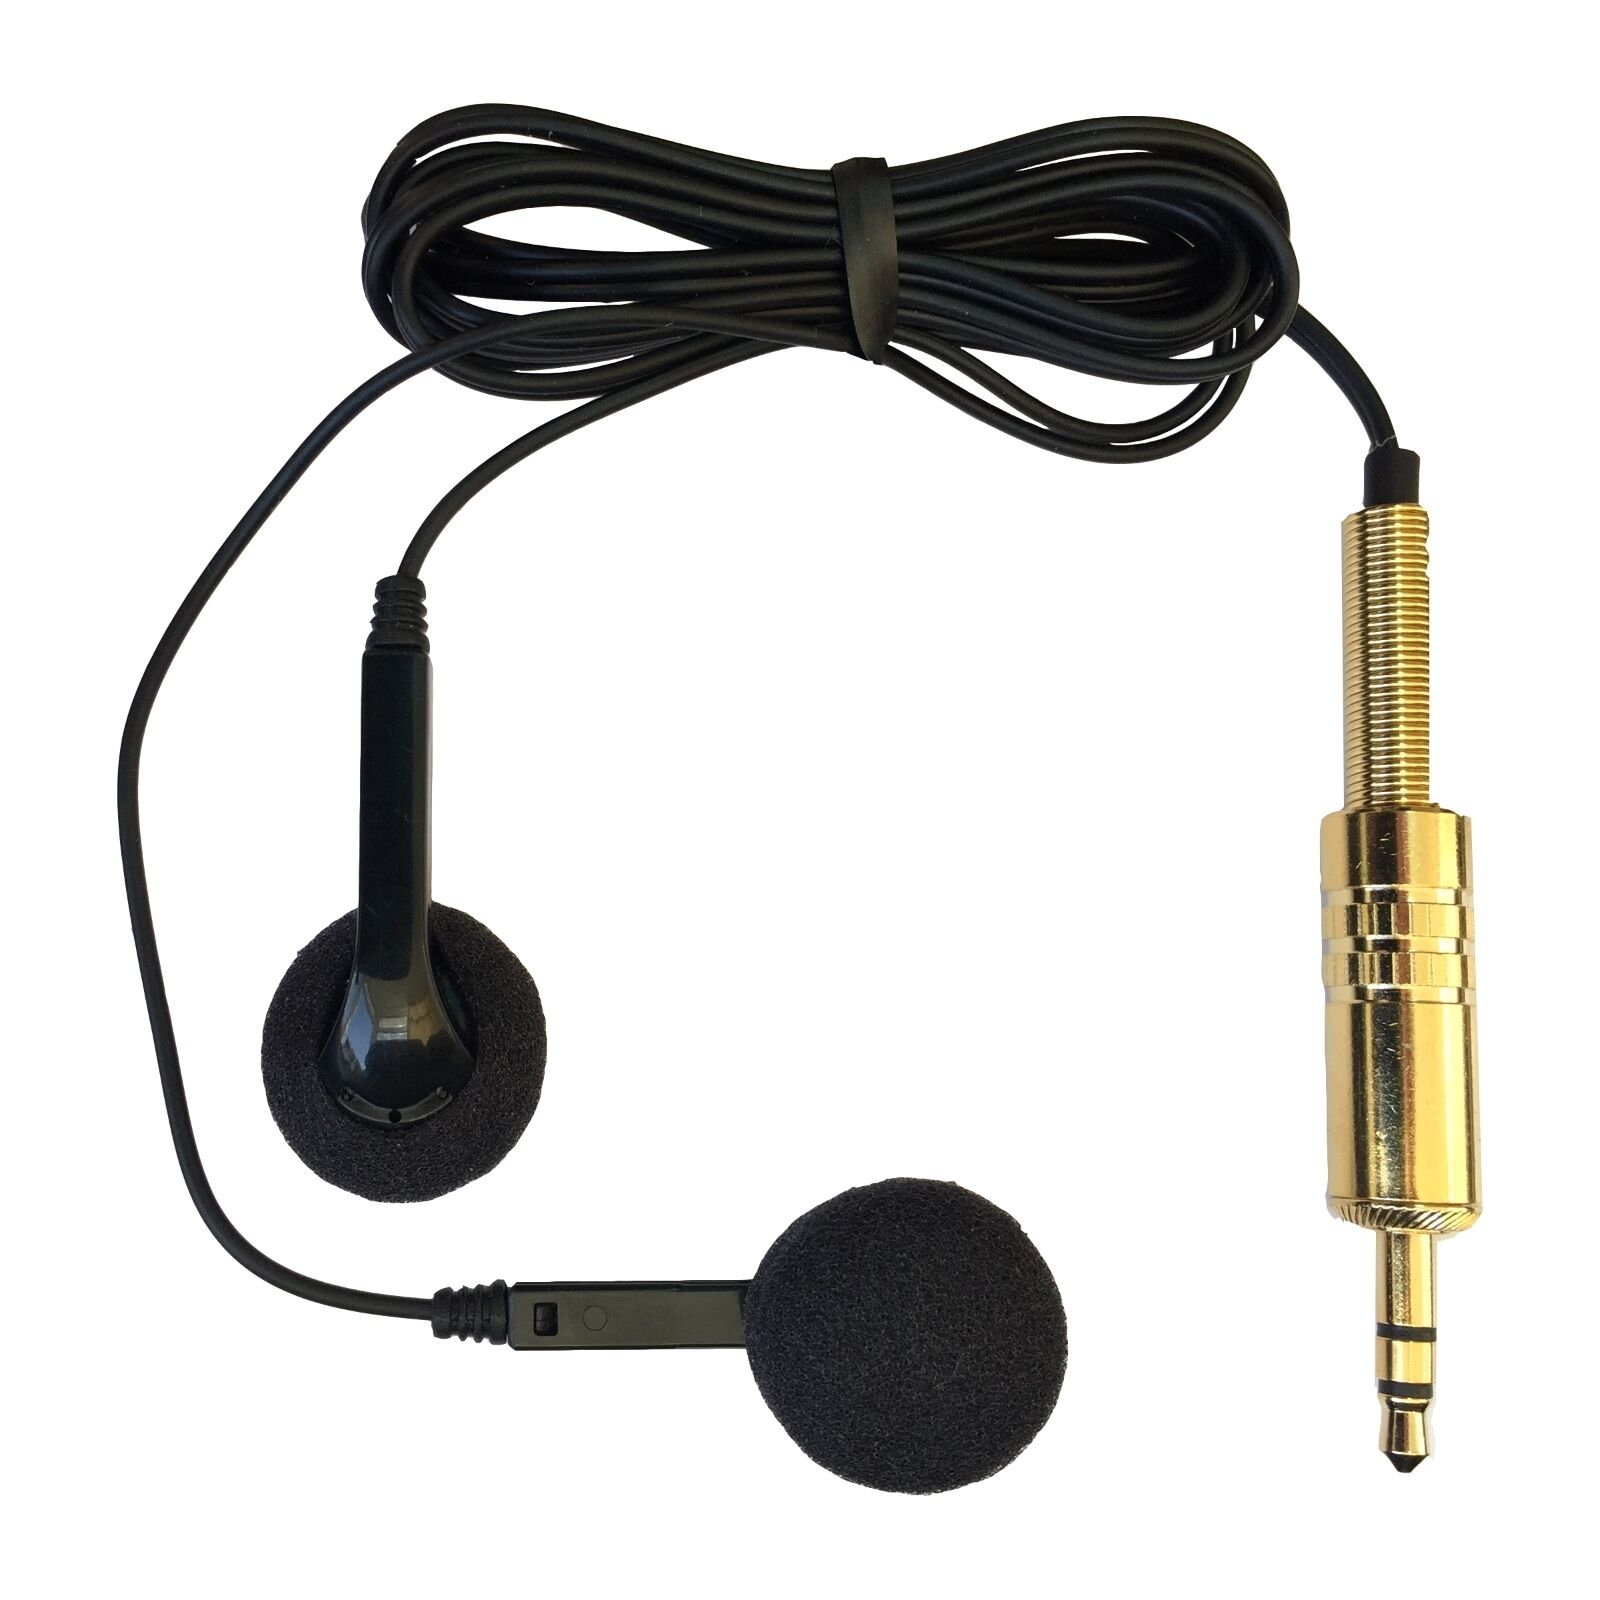 Gadget Shop Black Headphone Hat with 3.5mm Jack and Lead Freepost